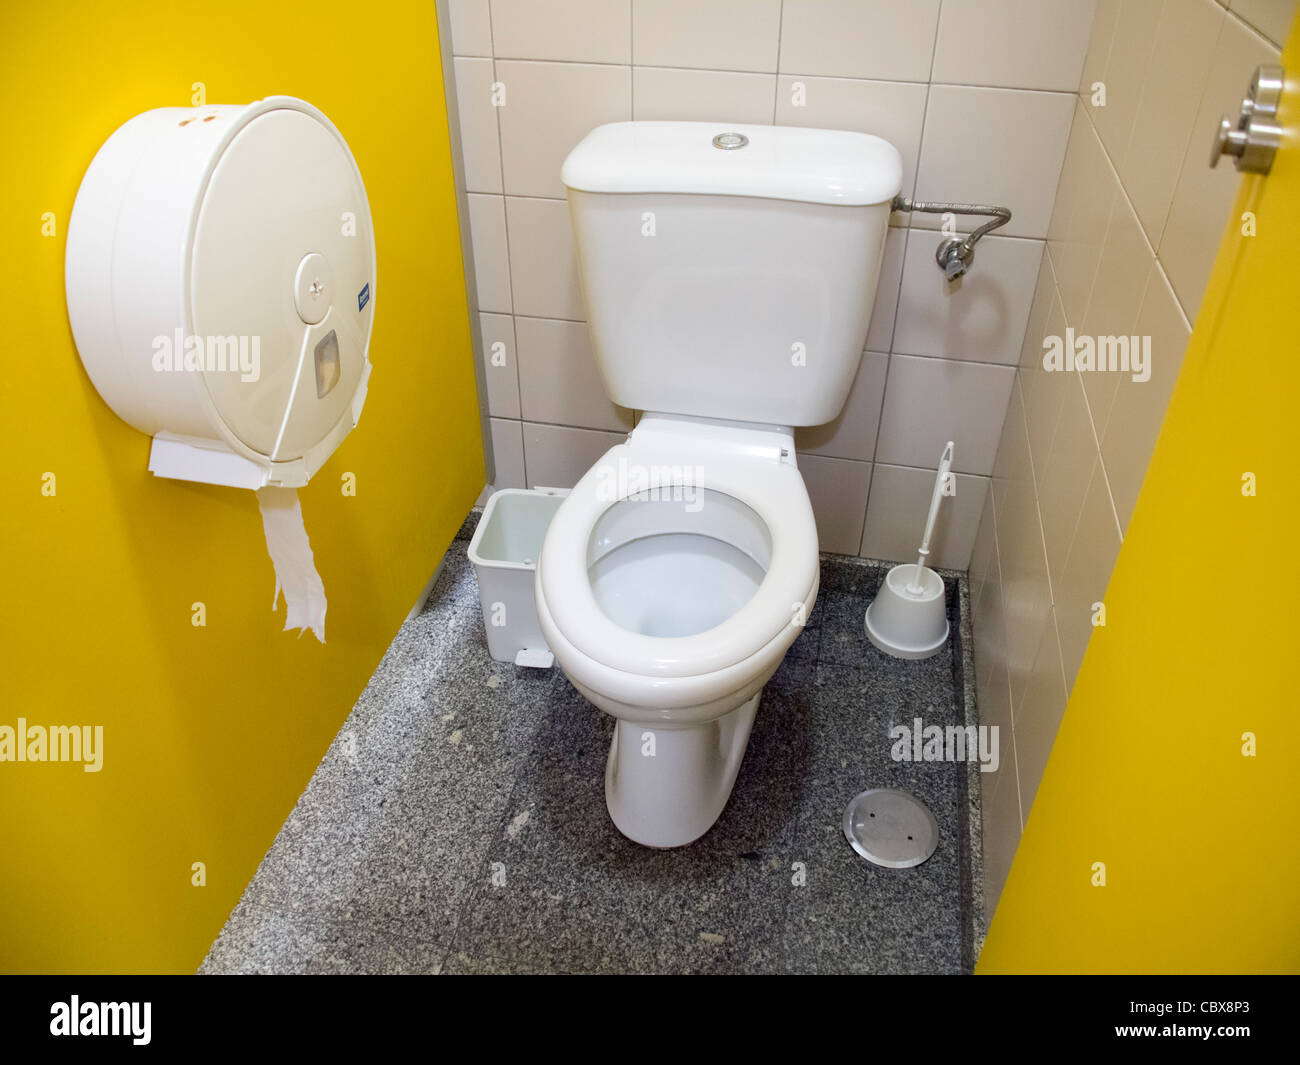 Toilet in a public restroom viewed from above - Stock Image